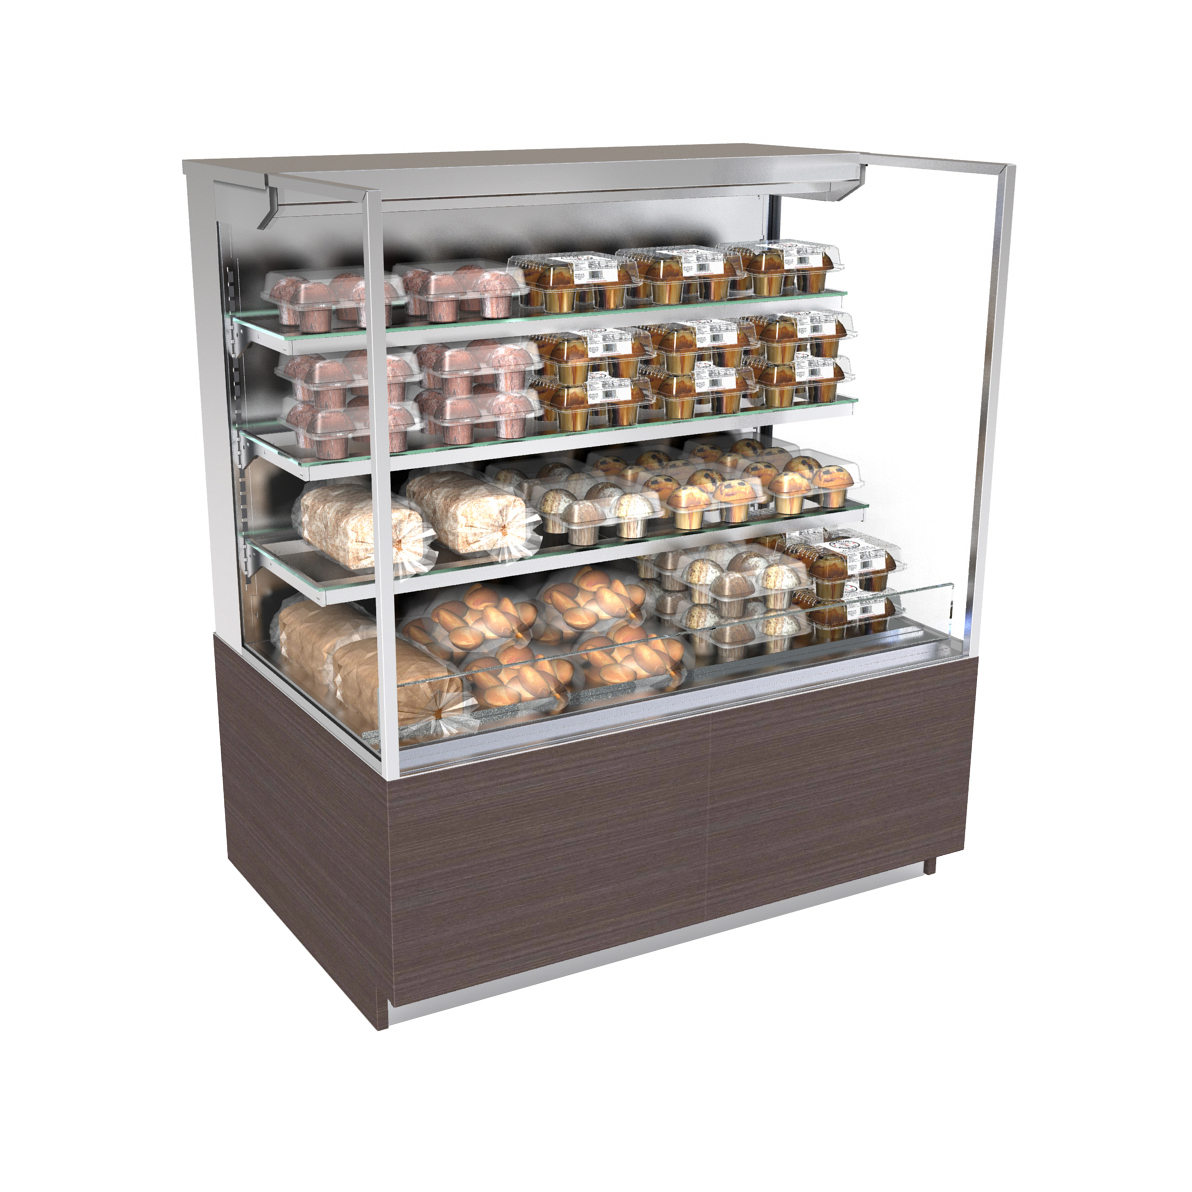 Structural Concepts NR4855DSSV display case, non-refrigerated, self-serve